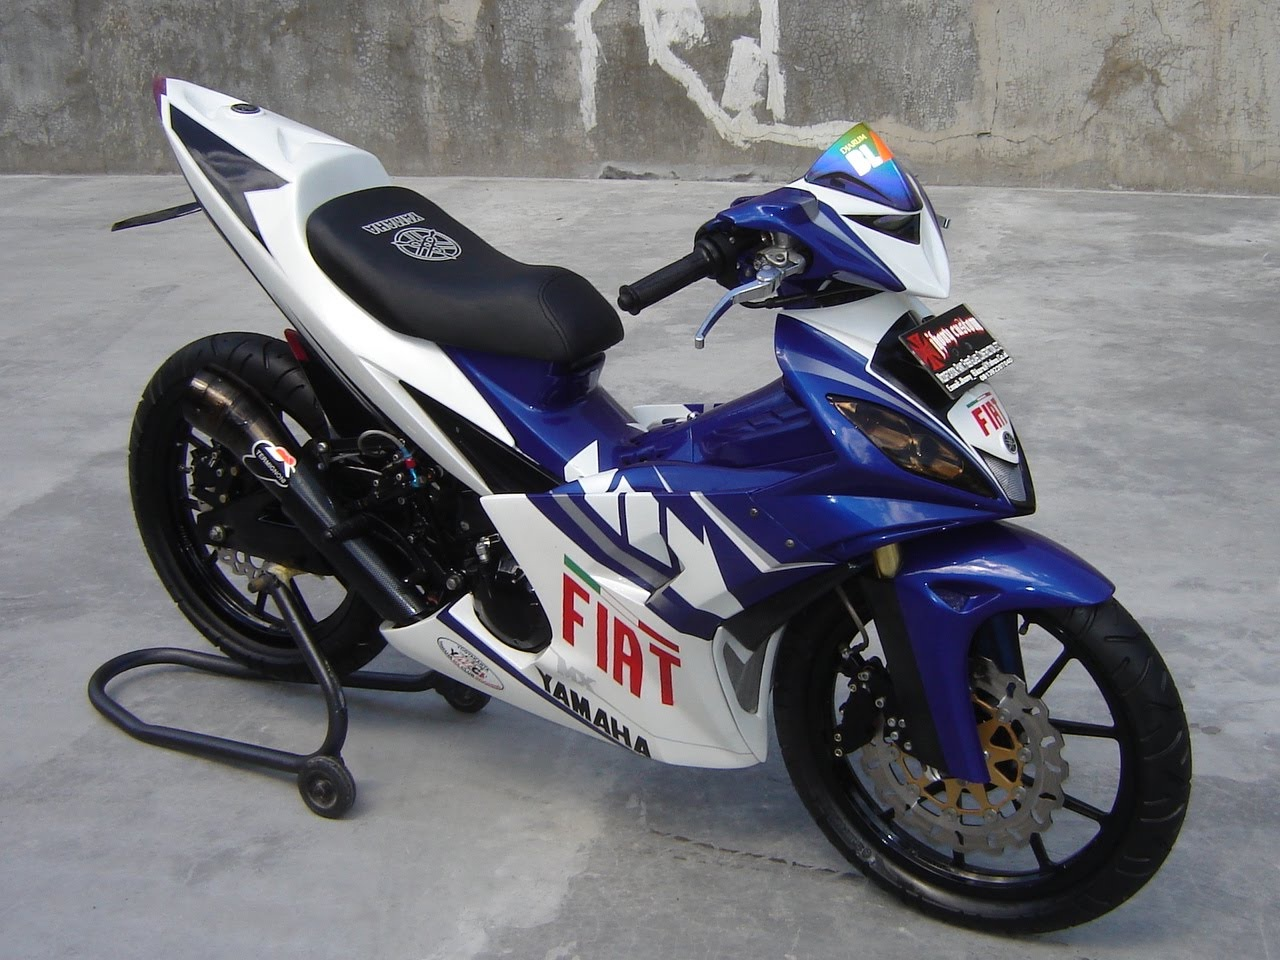 Modifikasi Motor Revo 2014 modifikasi revo 100cc modifikasi revo 110 modifikasi revo 2007 modifikasi revo 2008 modifikasi honda revo 110cc modifikasi honda revo absolute modifikasi honda revo 2007 modifikasi honda revo 100cc